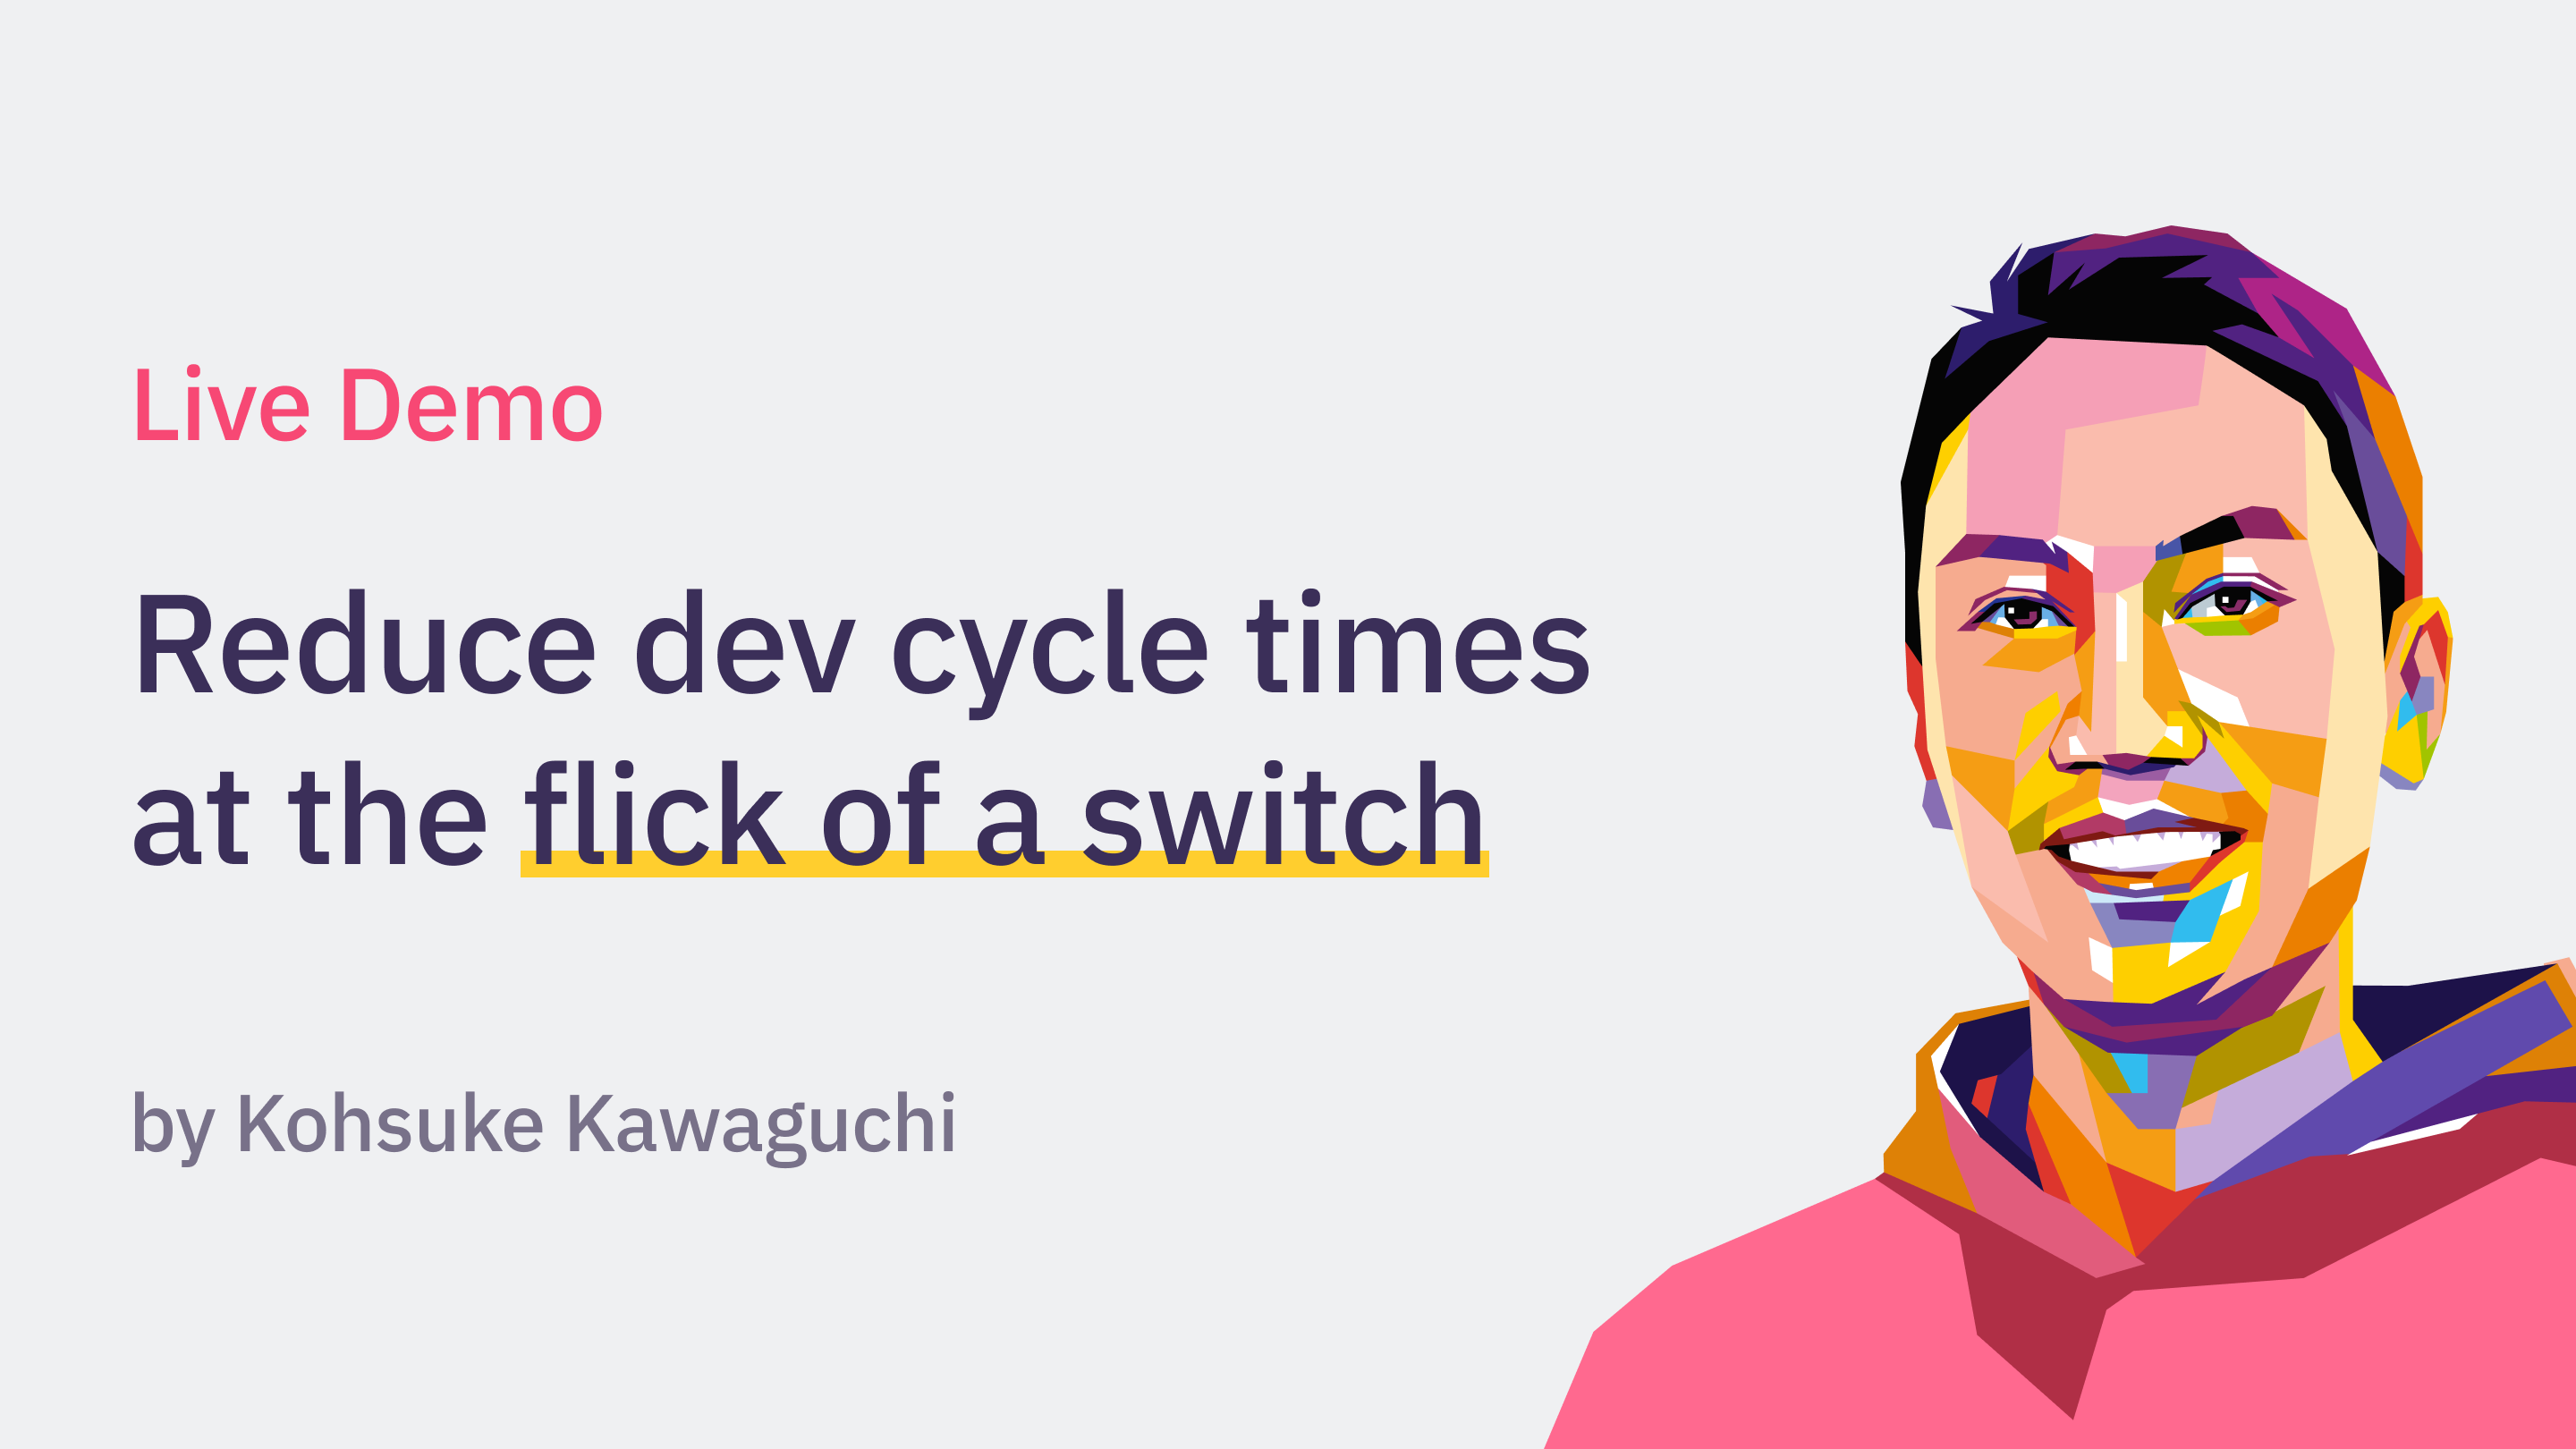 Kohsuke demos Launchable - reduce dev cycle times at the flick of a switch